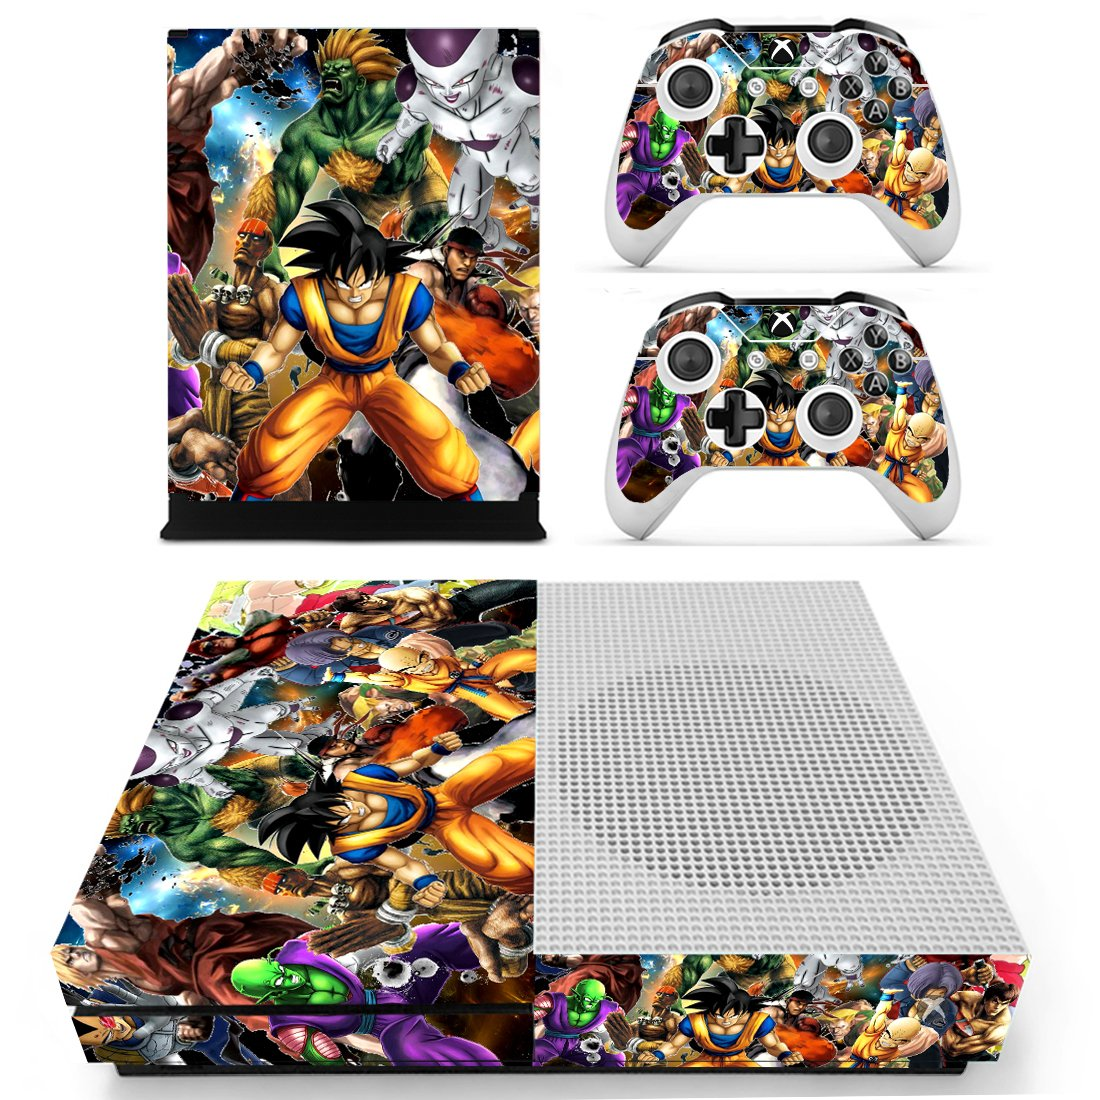 Dragon Ball Xbox One S Skin Sticker Wrap